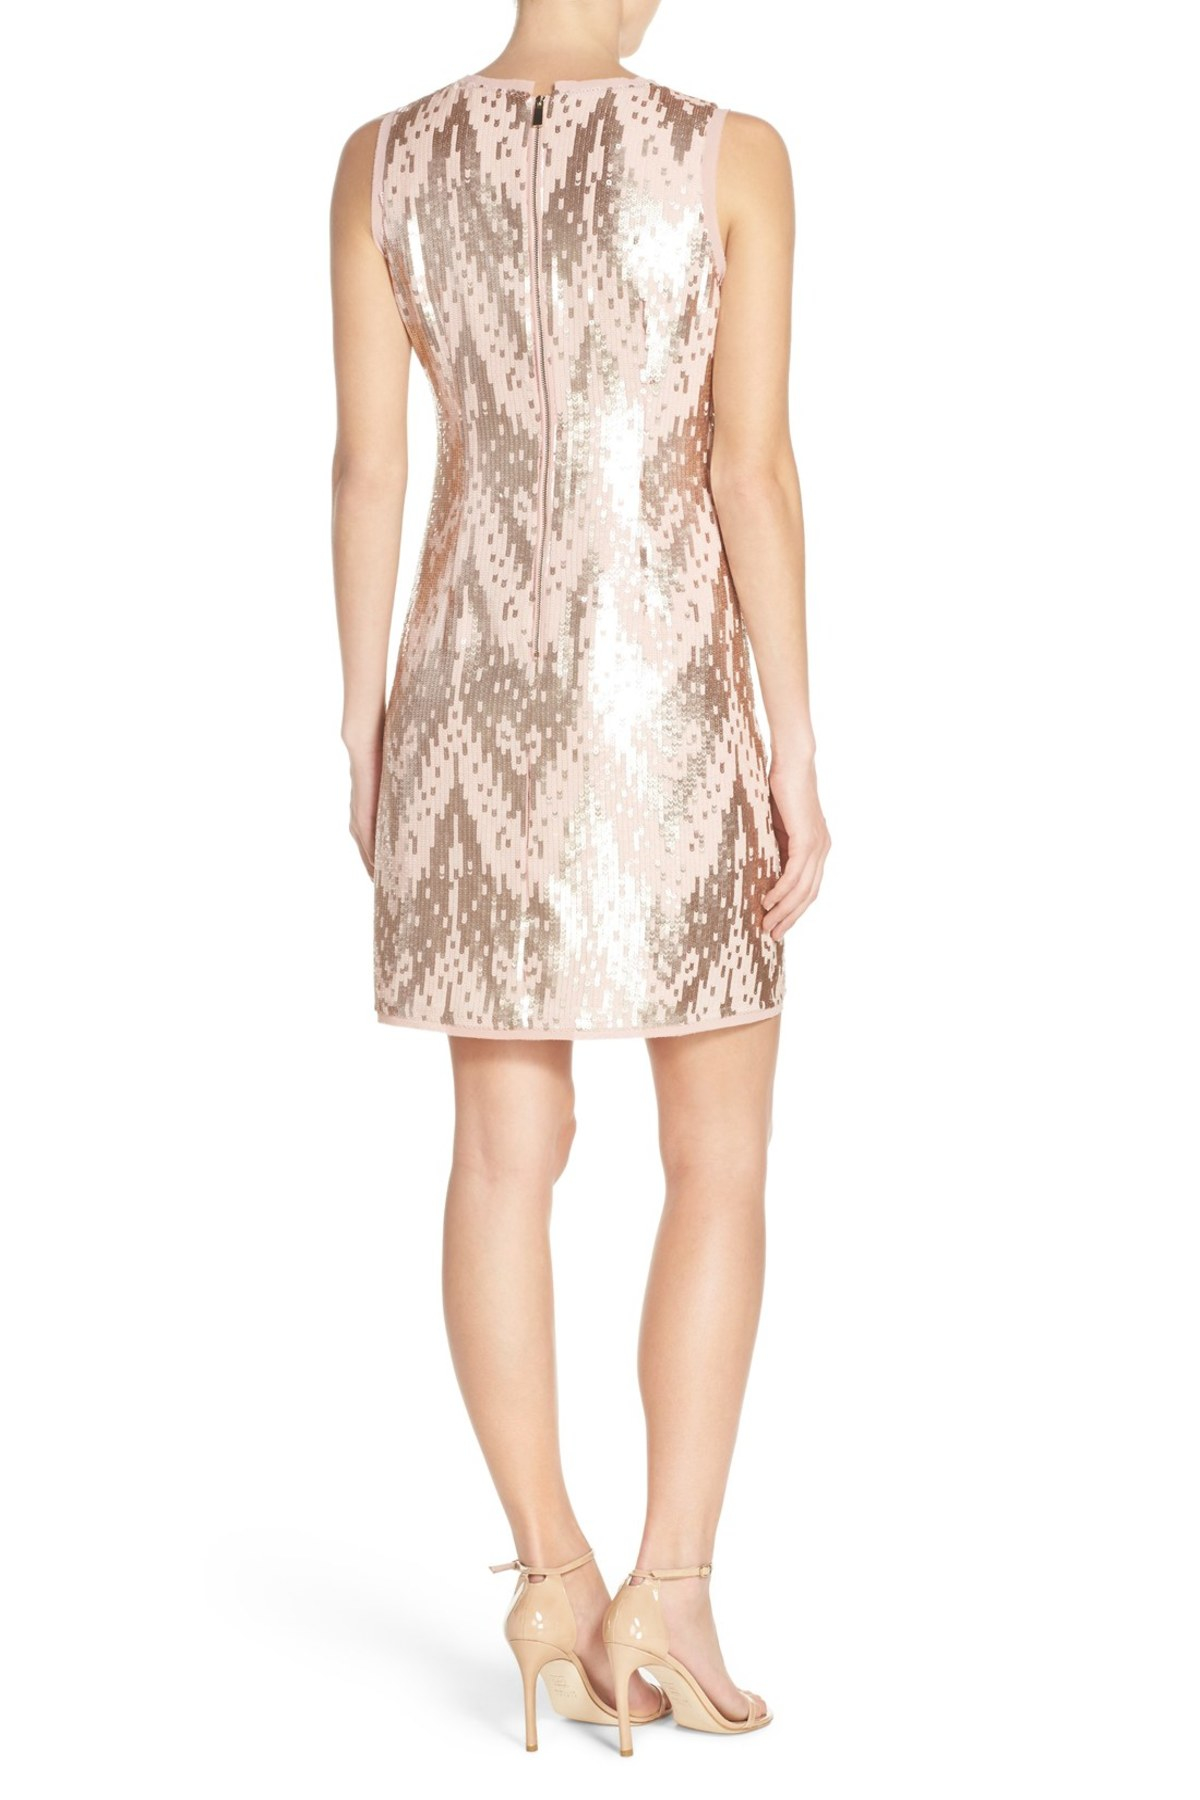 Vince Camuto Synthetic Sequin Sheath Dress Lyst